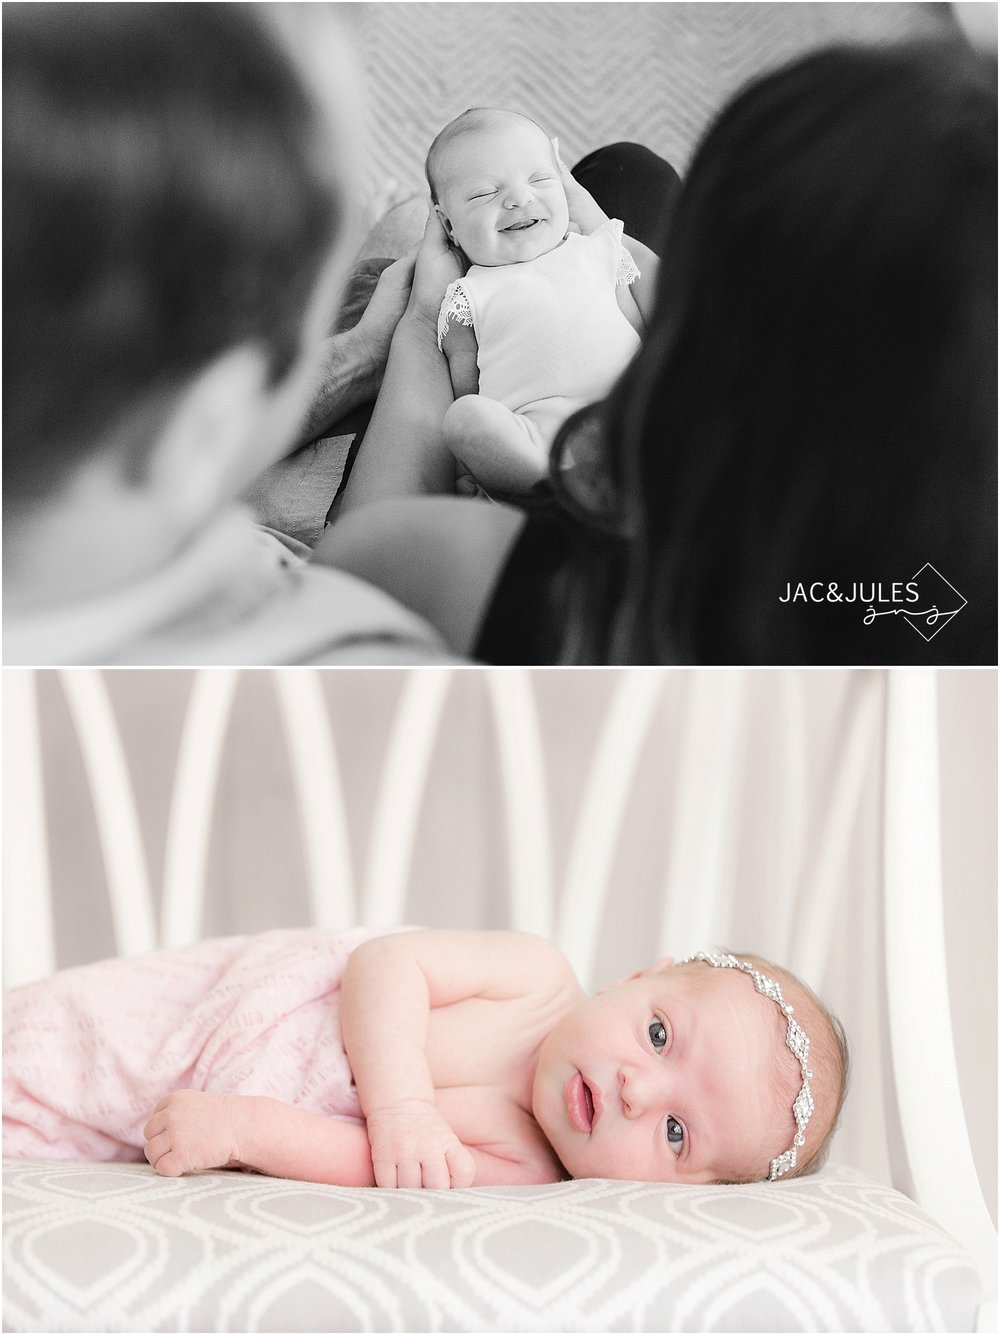 jacnjules photographs newborn baby girl in brick nj